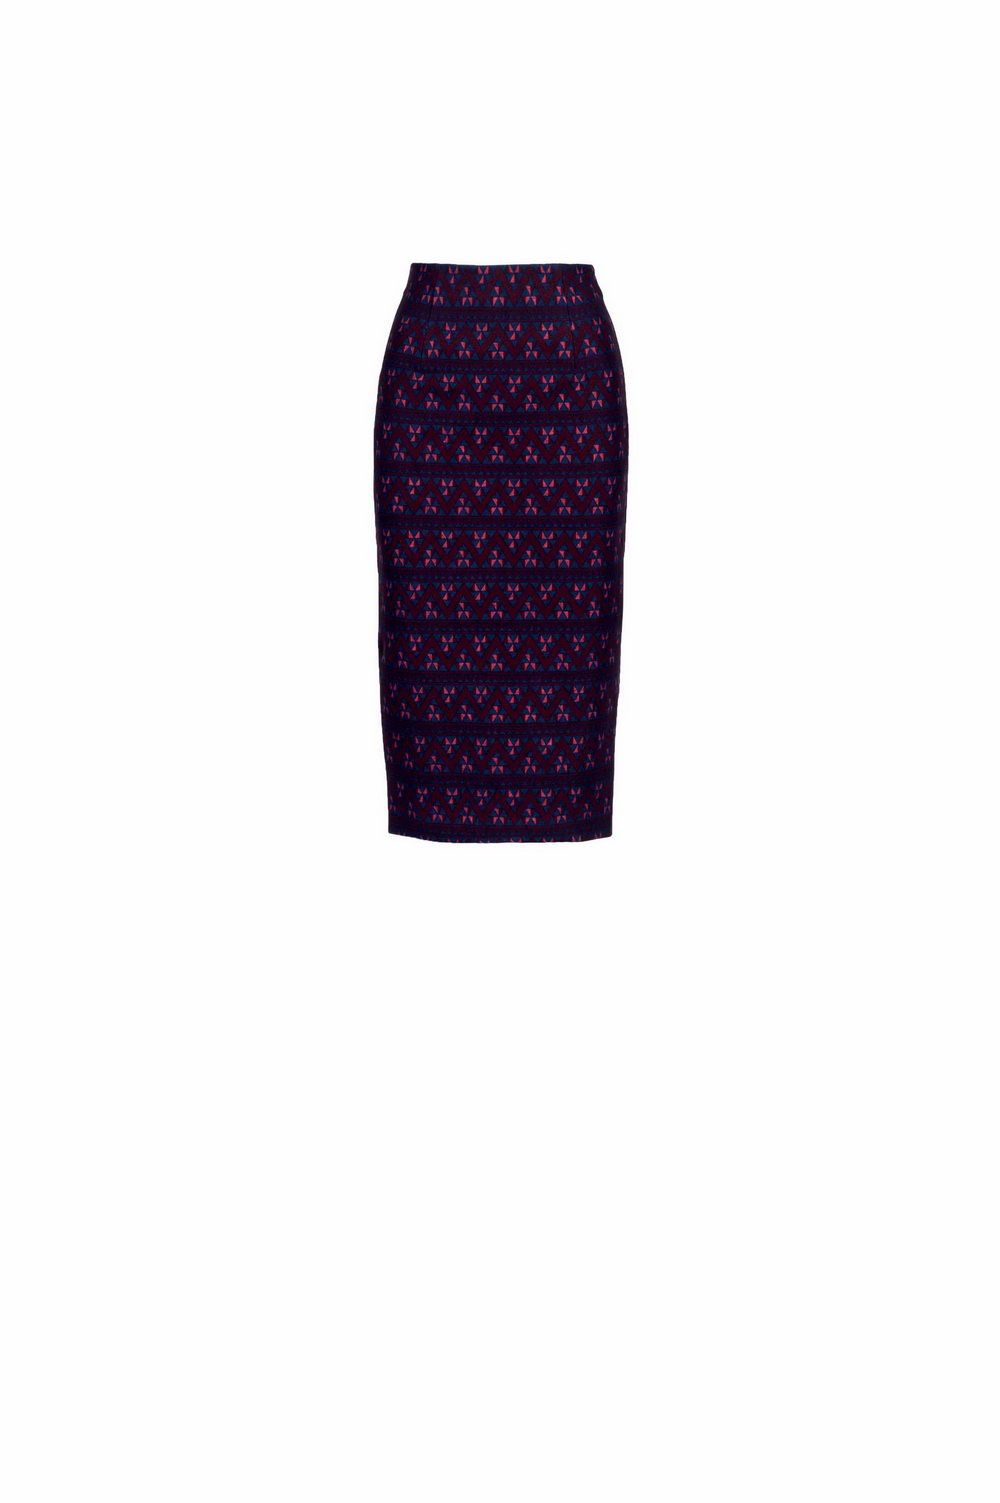 AnonymeDesigners_R239FS091 - Skirt - PVP 94,20€_resize